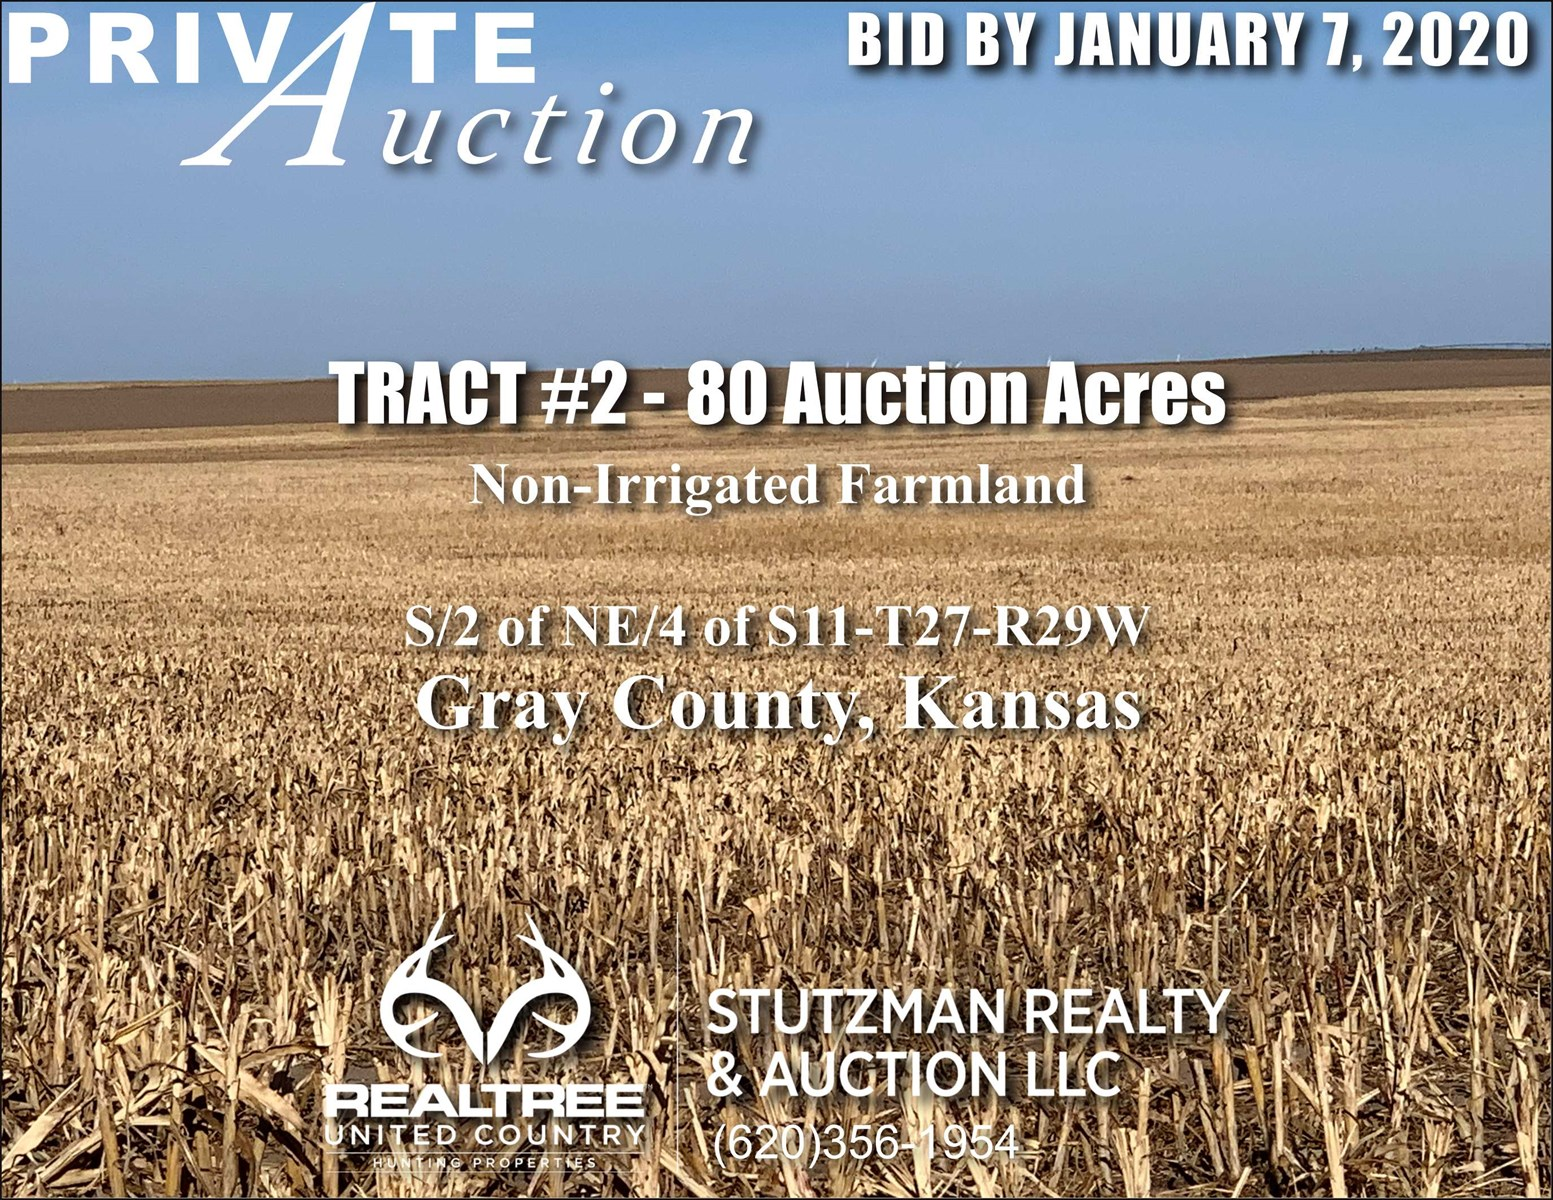 Gray County KS - TR #2 - 80 ACRES NON-IRRIGATED FARMLAND